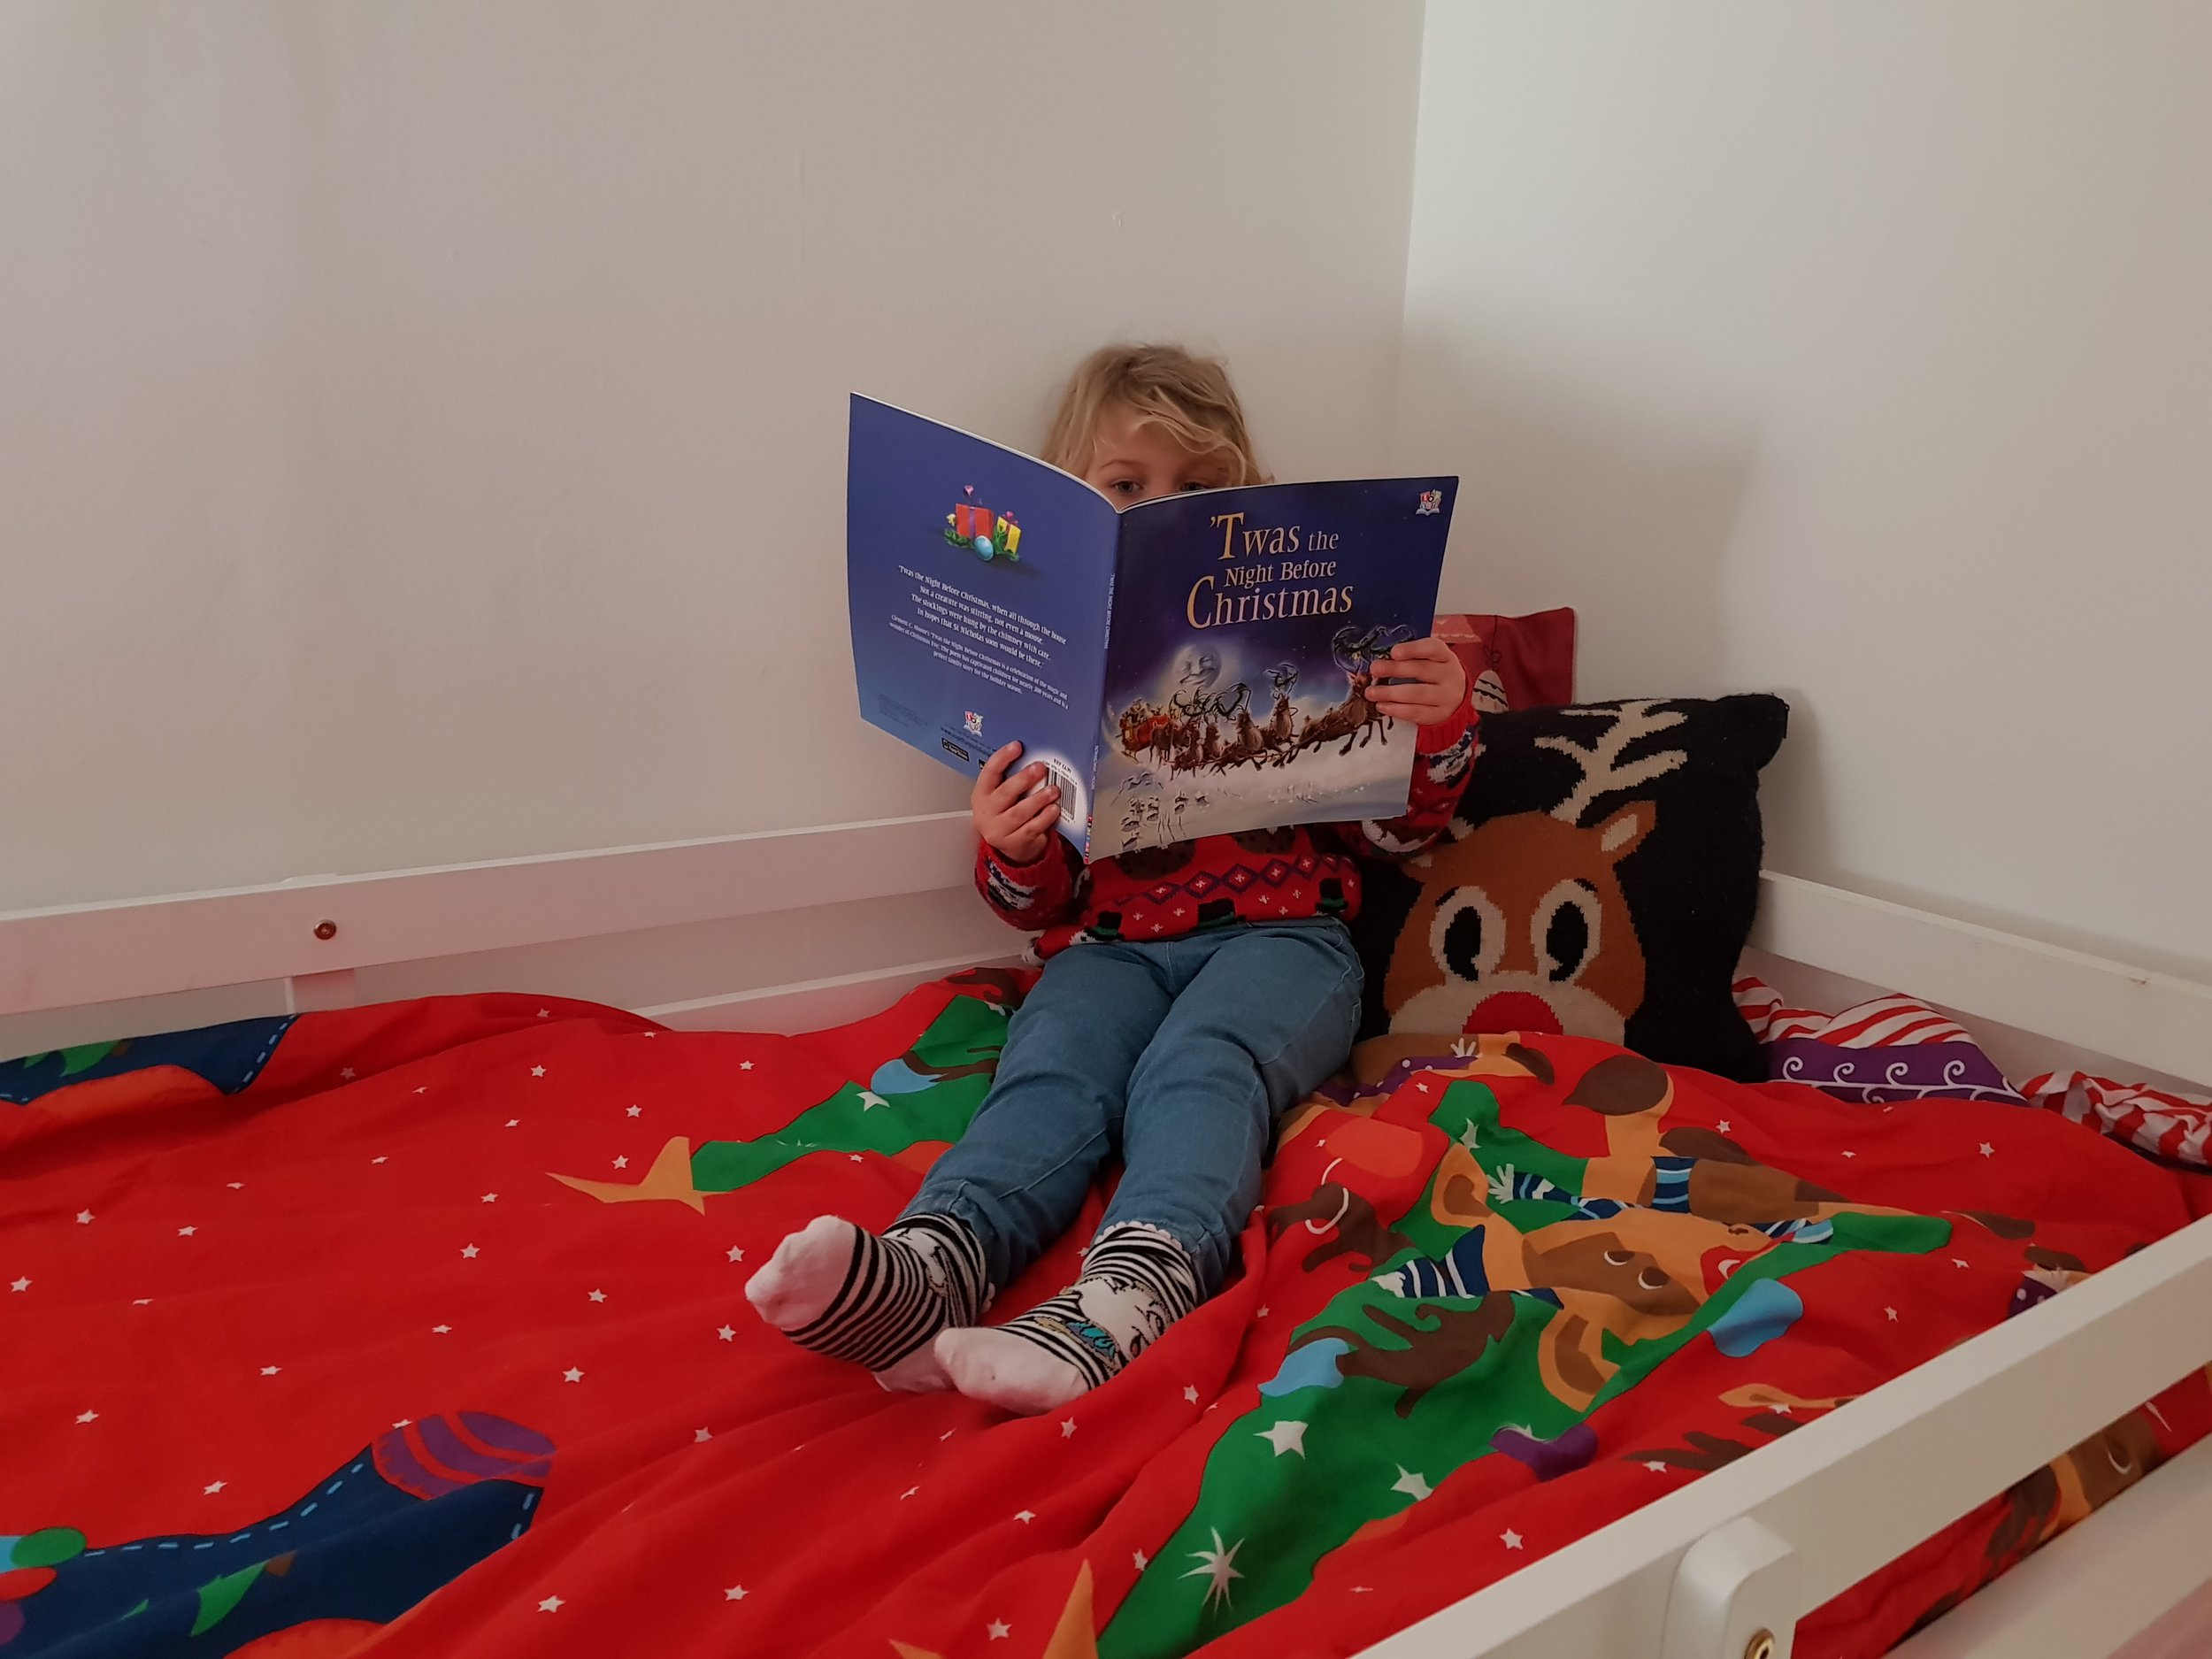 Squidgy reading 'Twas the Night Before Christmas